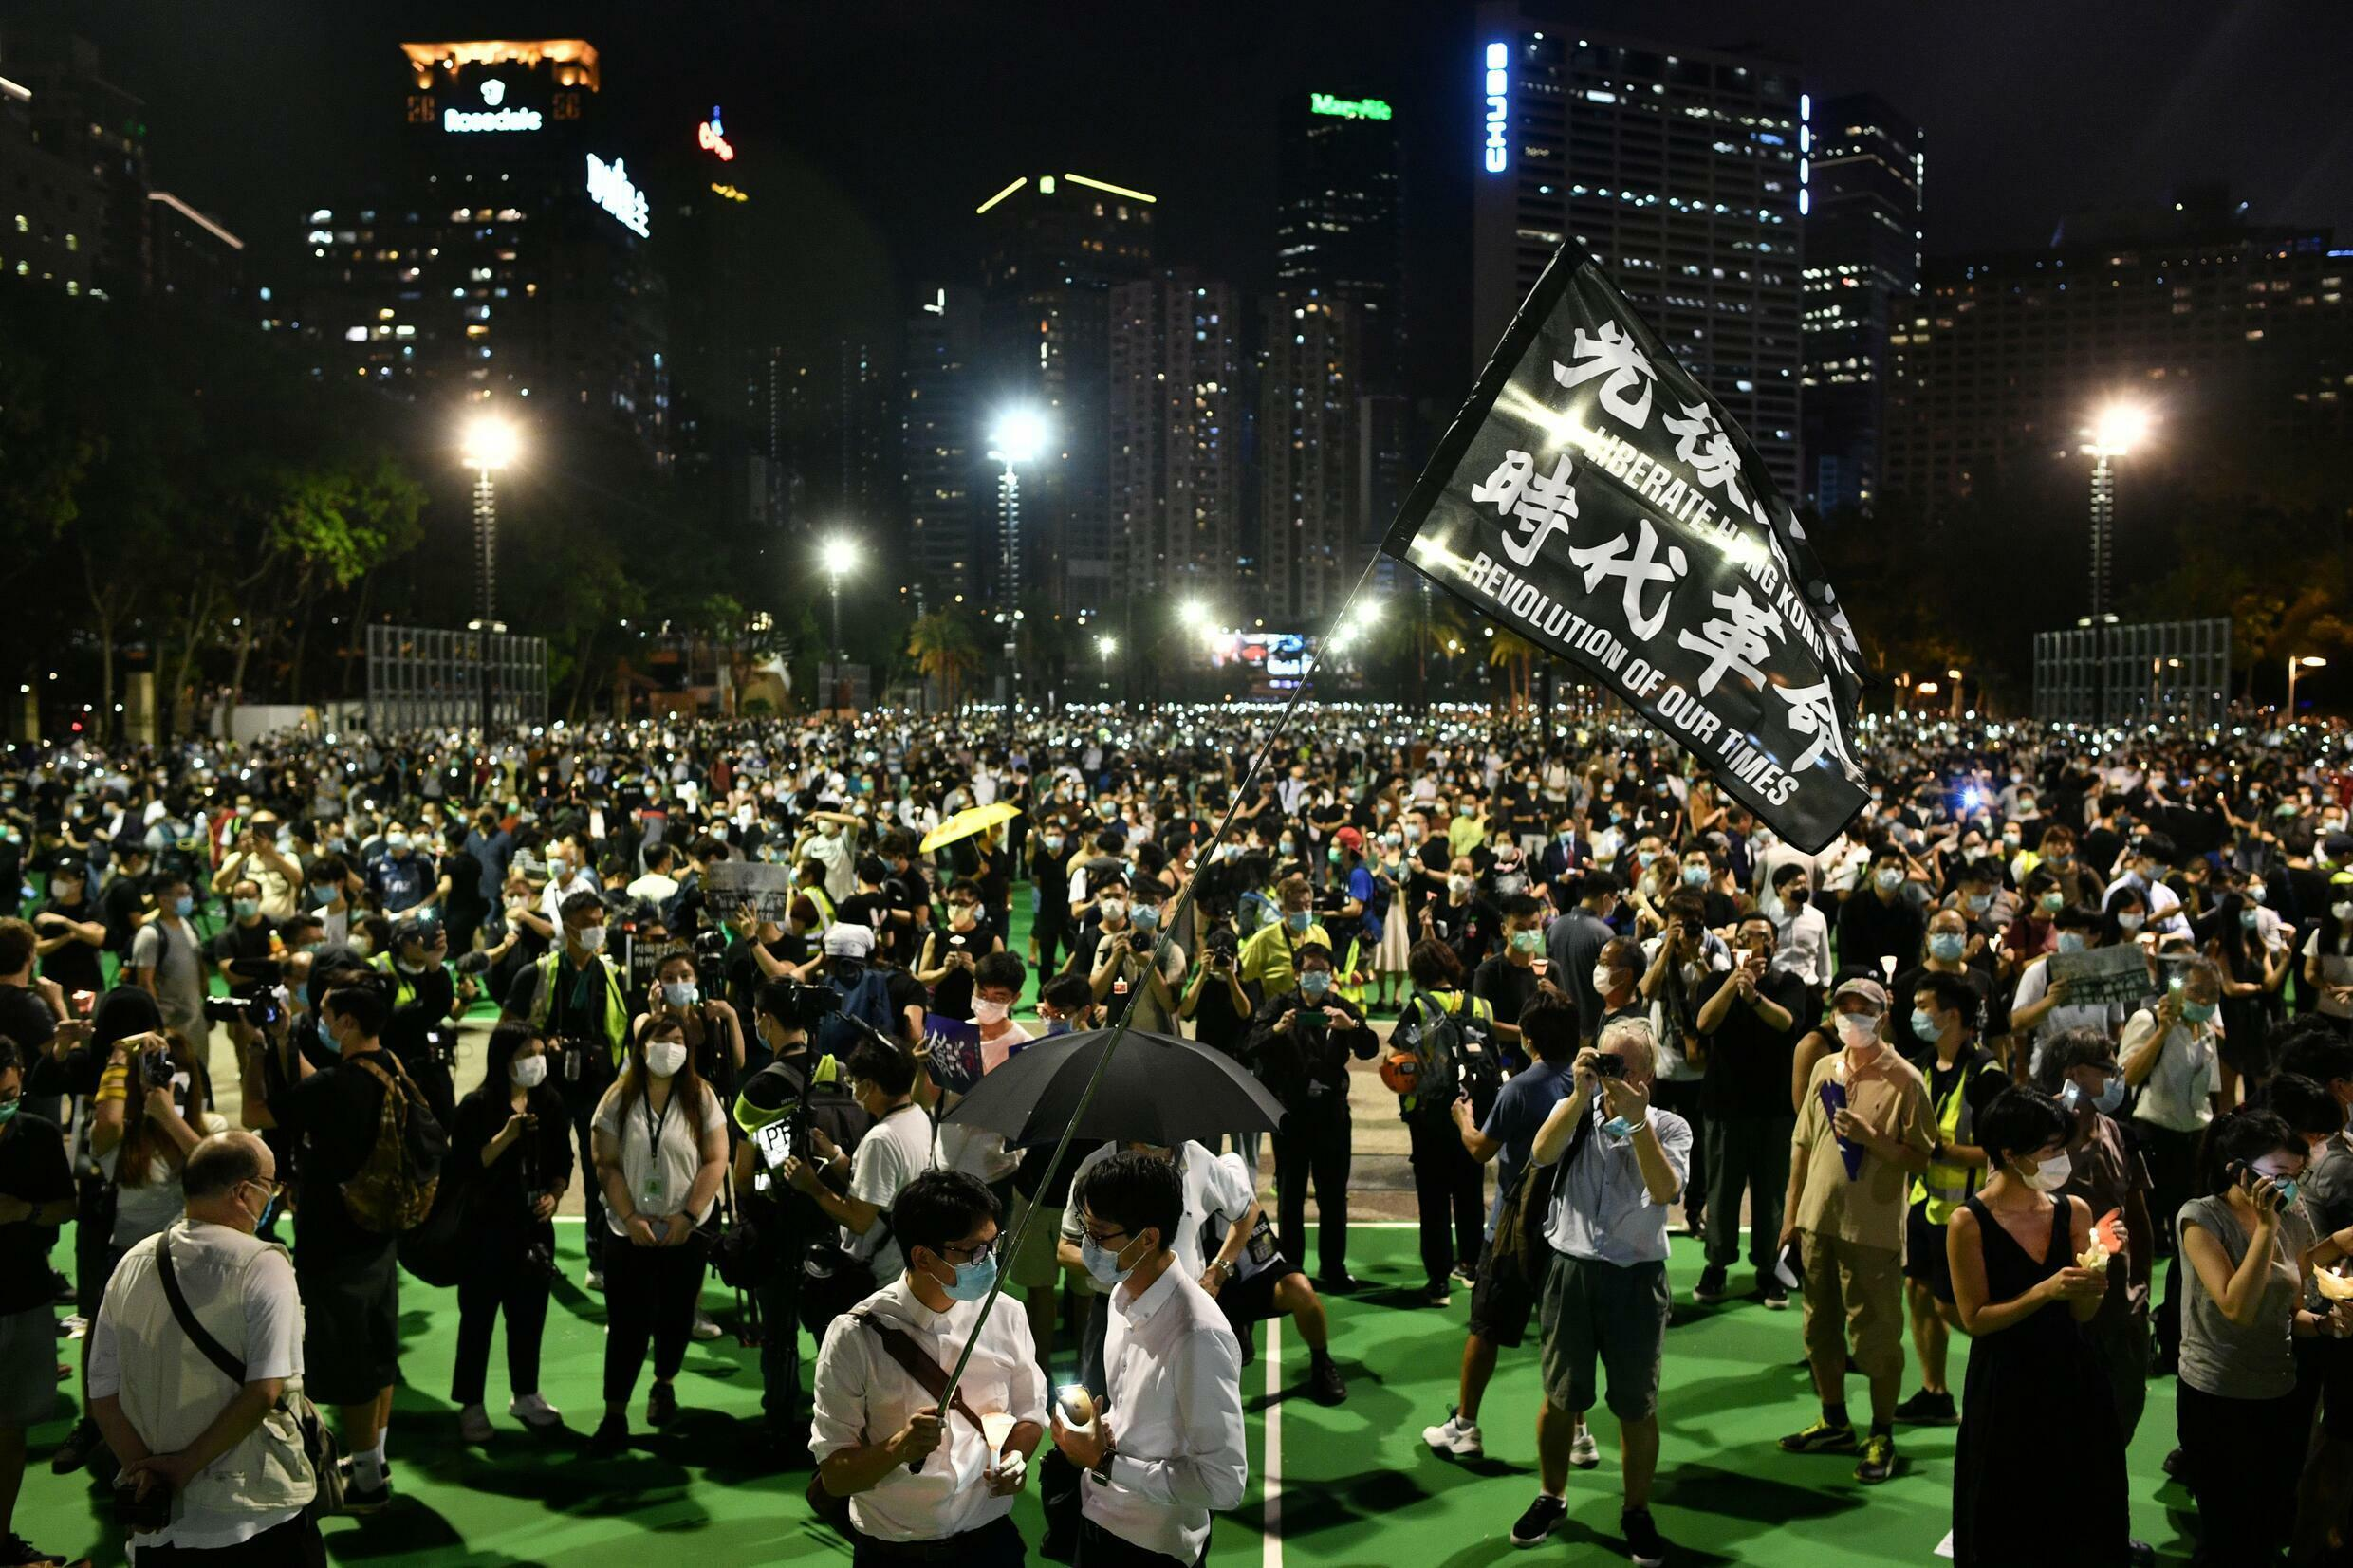 The Hong Kong Alliance had organised three decades of vigils commemorating the victims of Beijing's Tiananmen Square crackdown in 1989